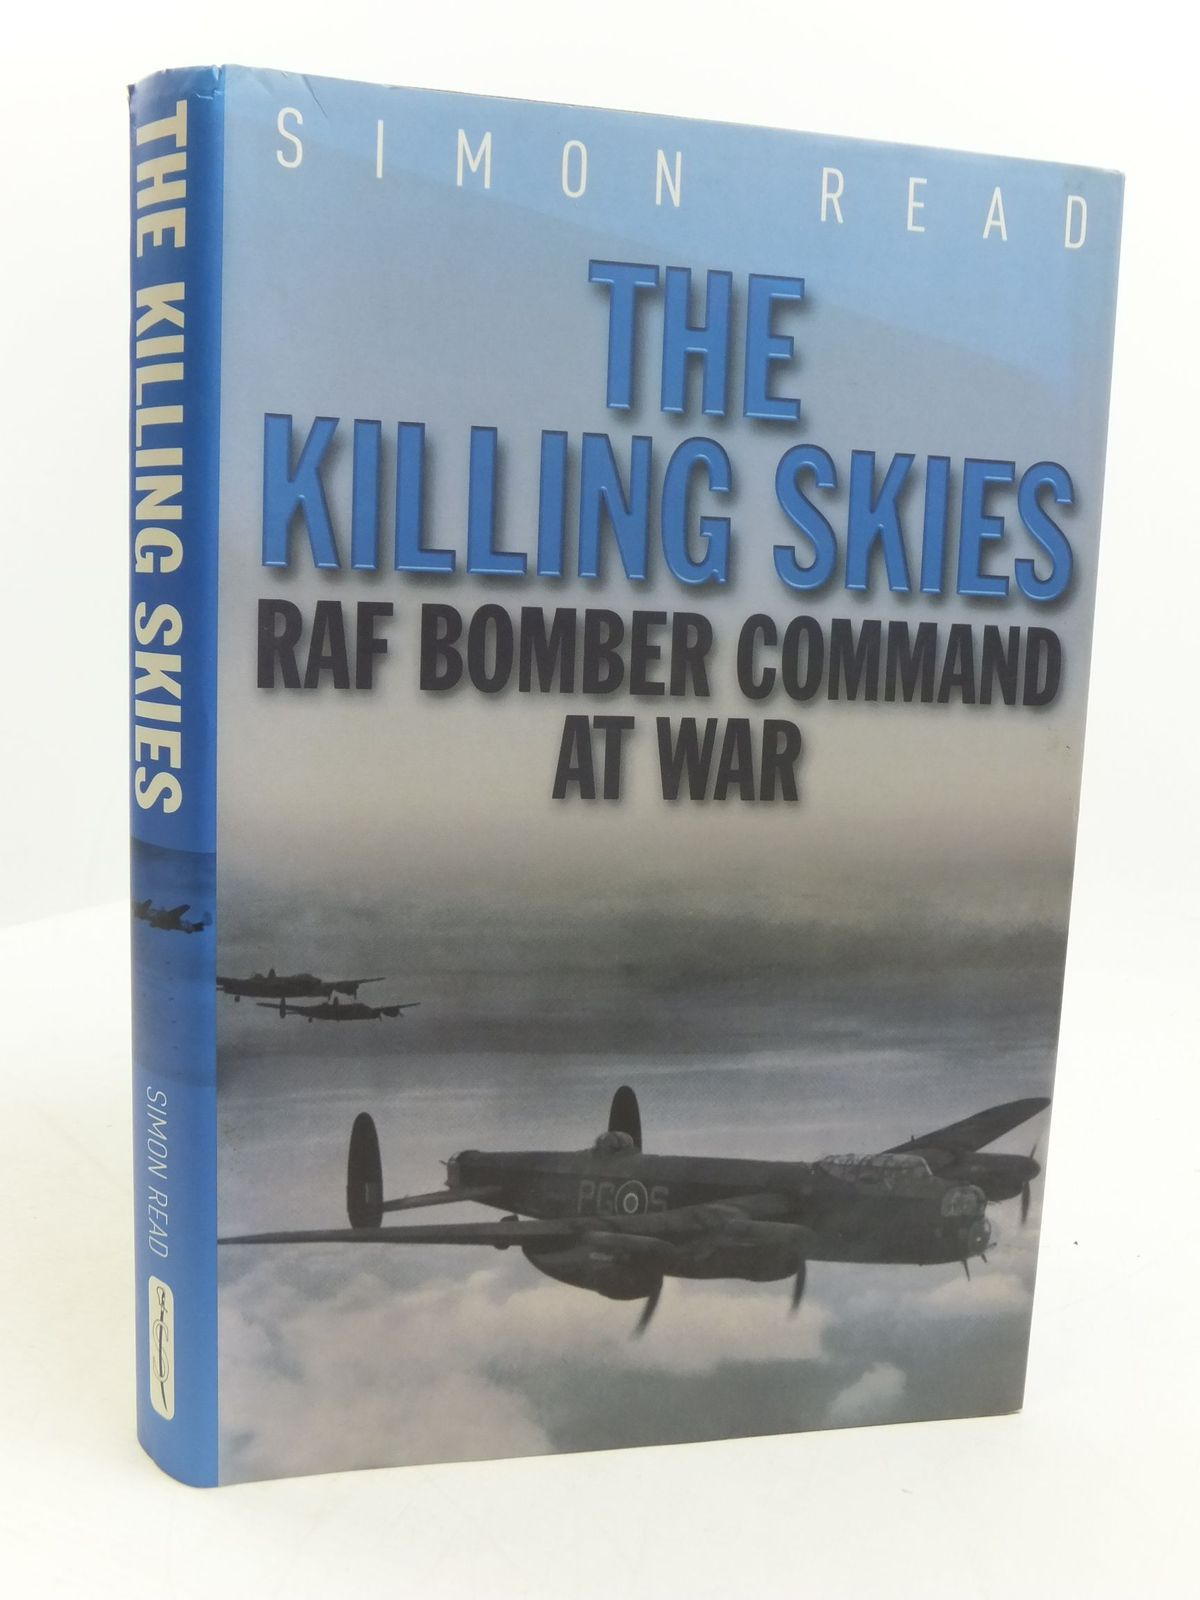 Photo of THE KILLING SKIES RAF BOMBER COMMAND AT WAR written by Read, Simon published by Spellmount Ltd. (STOCK CODE: 1807274)  for sale by Stella & Rose's Books